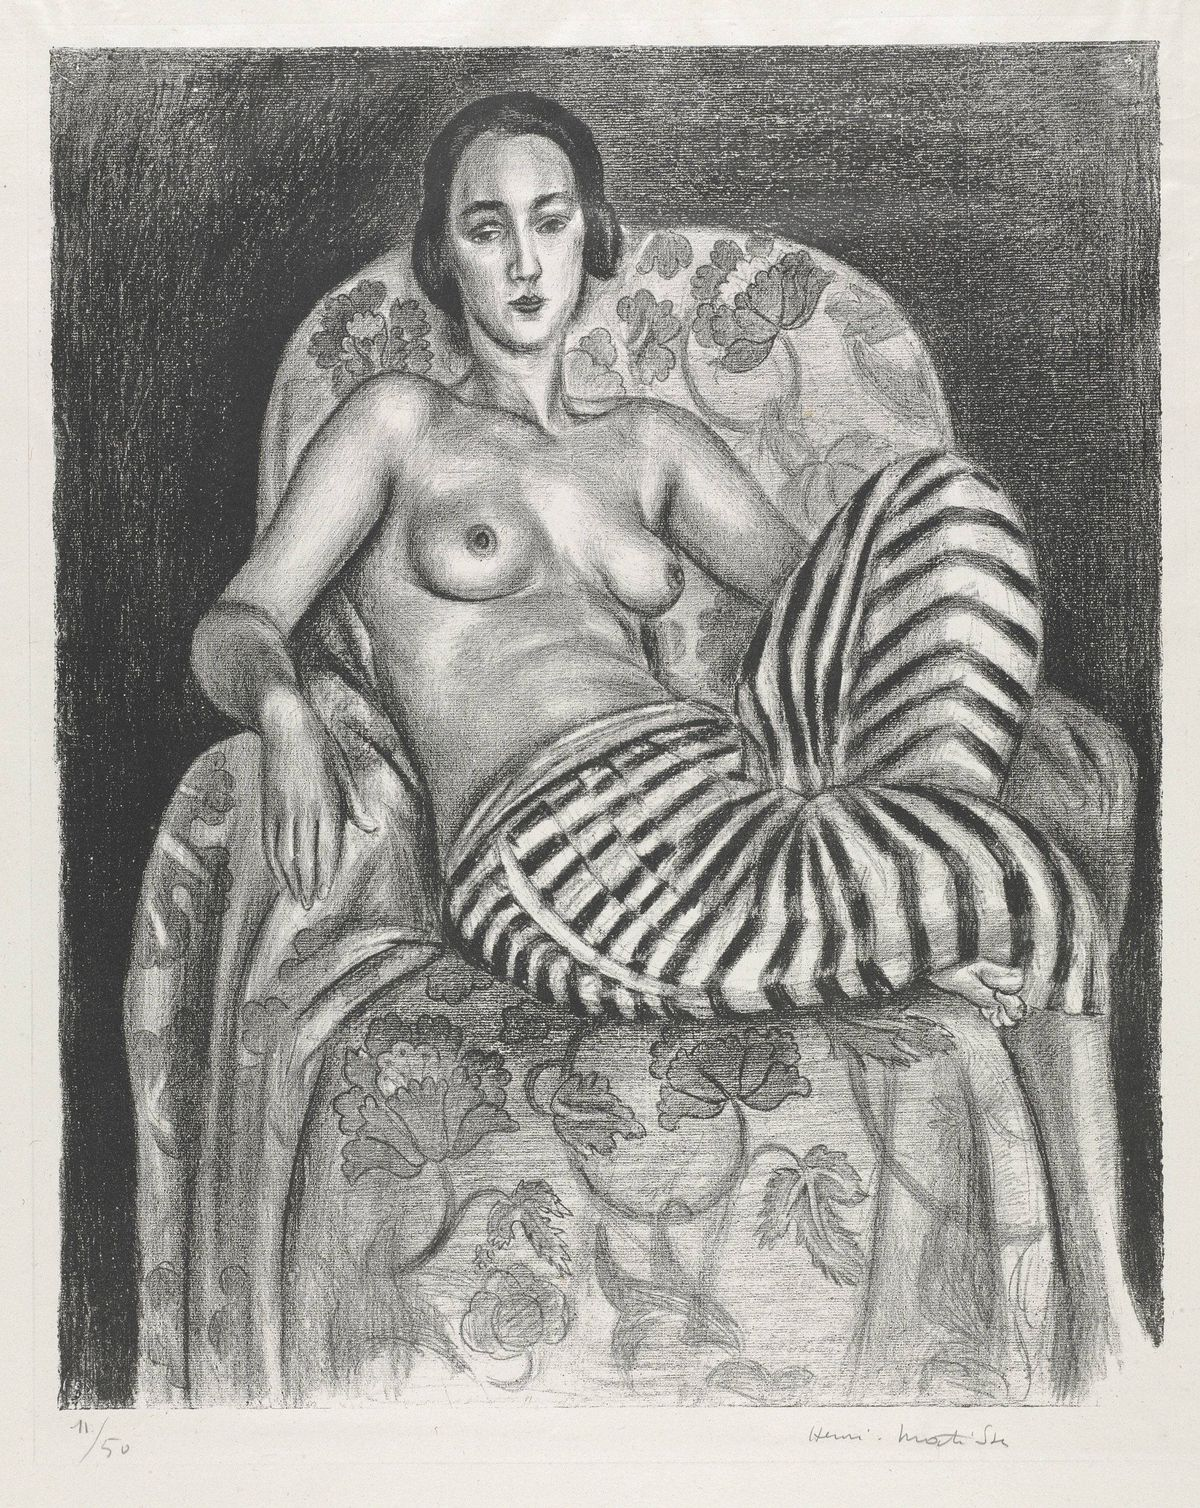 Henri Matisse, Large Odalisque with Striped Pantaloons, 1925, crayon transfer lithograph with scraping, The Baltimore Museum of Art: The Cone Collection, formed by Dr. Claribel Cone and Miss Etta Cone of Baltimore, Maryland, BMA